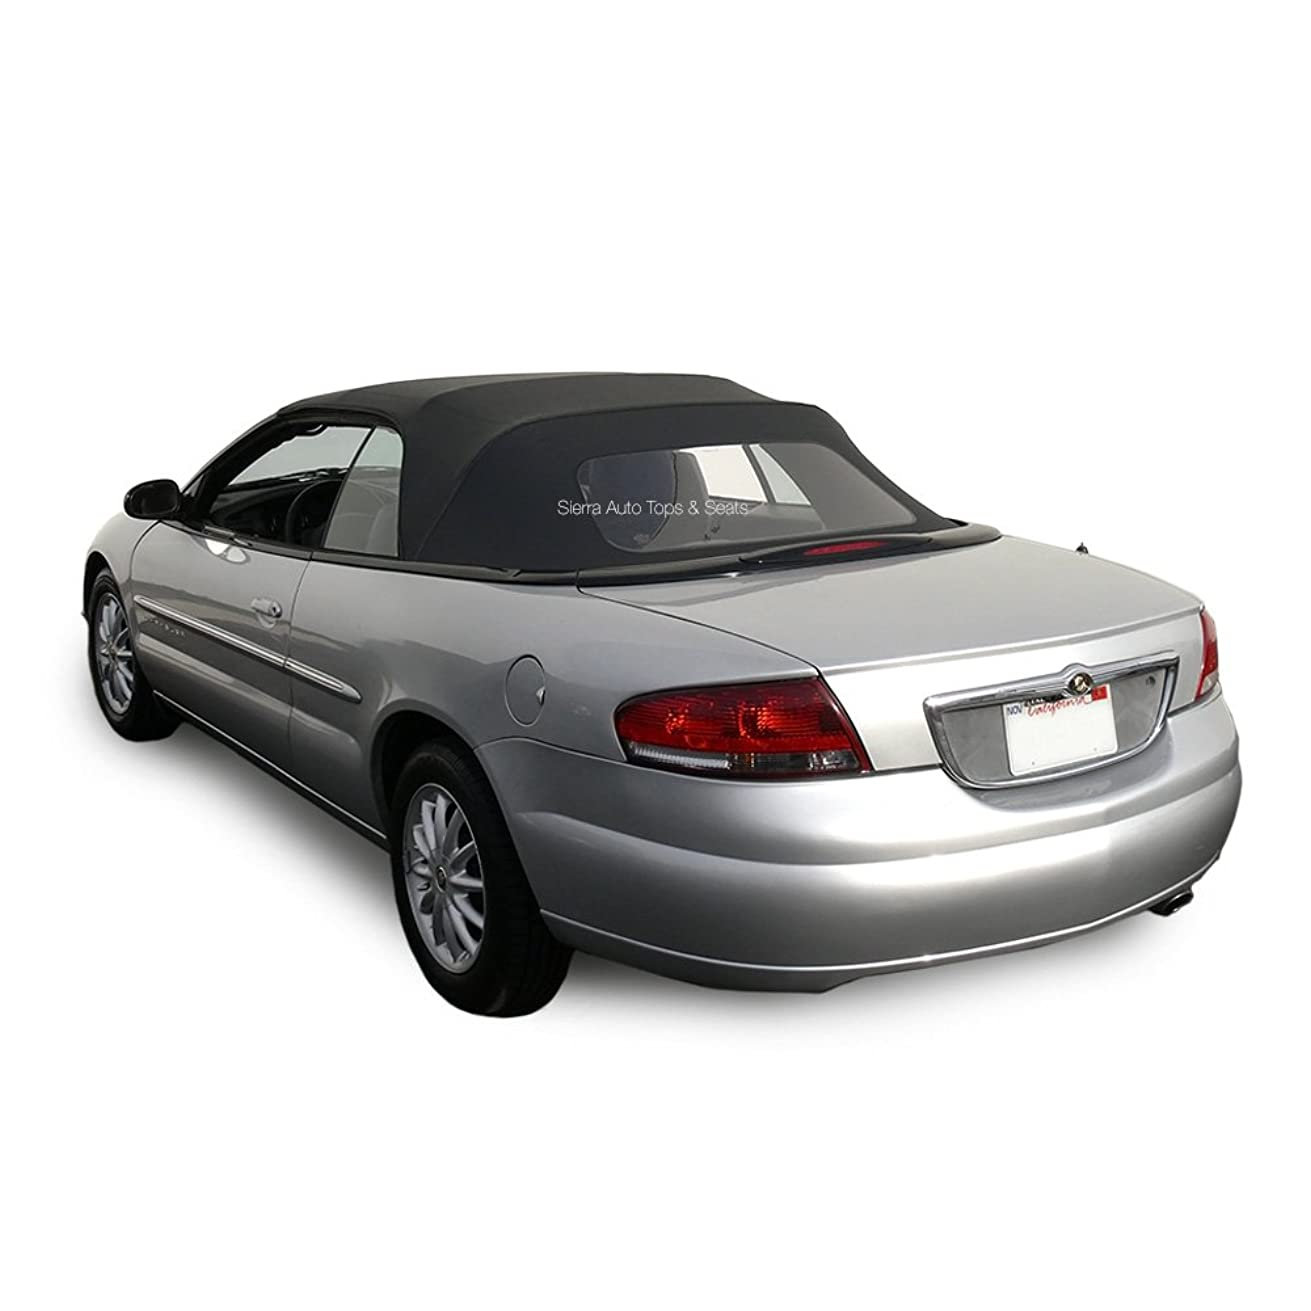 Sierra Auto Tops Convertible Soft Top Replacement, Chrysler Sebring 1996-2006, w/Plastic Window, Sailcloth Vinyl, Black